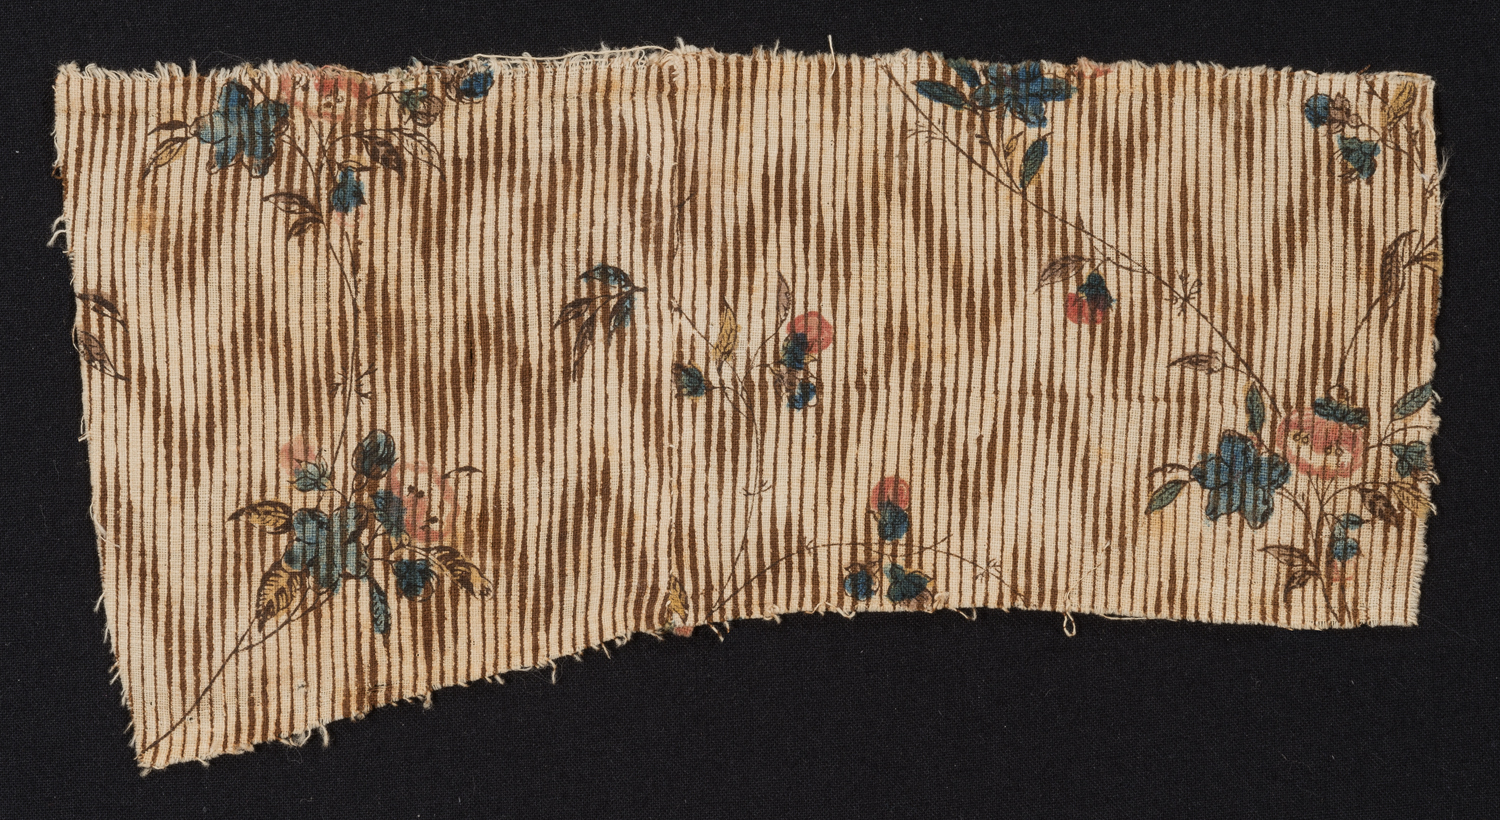 One of four known textile examples produced at Archibald Hamilton Rowan's calico-printing mill on the banks of the Brandywine, 1797–99. Bequest of Henry Francis du Pont 1967.836.